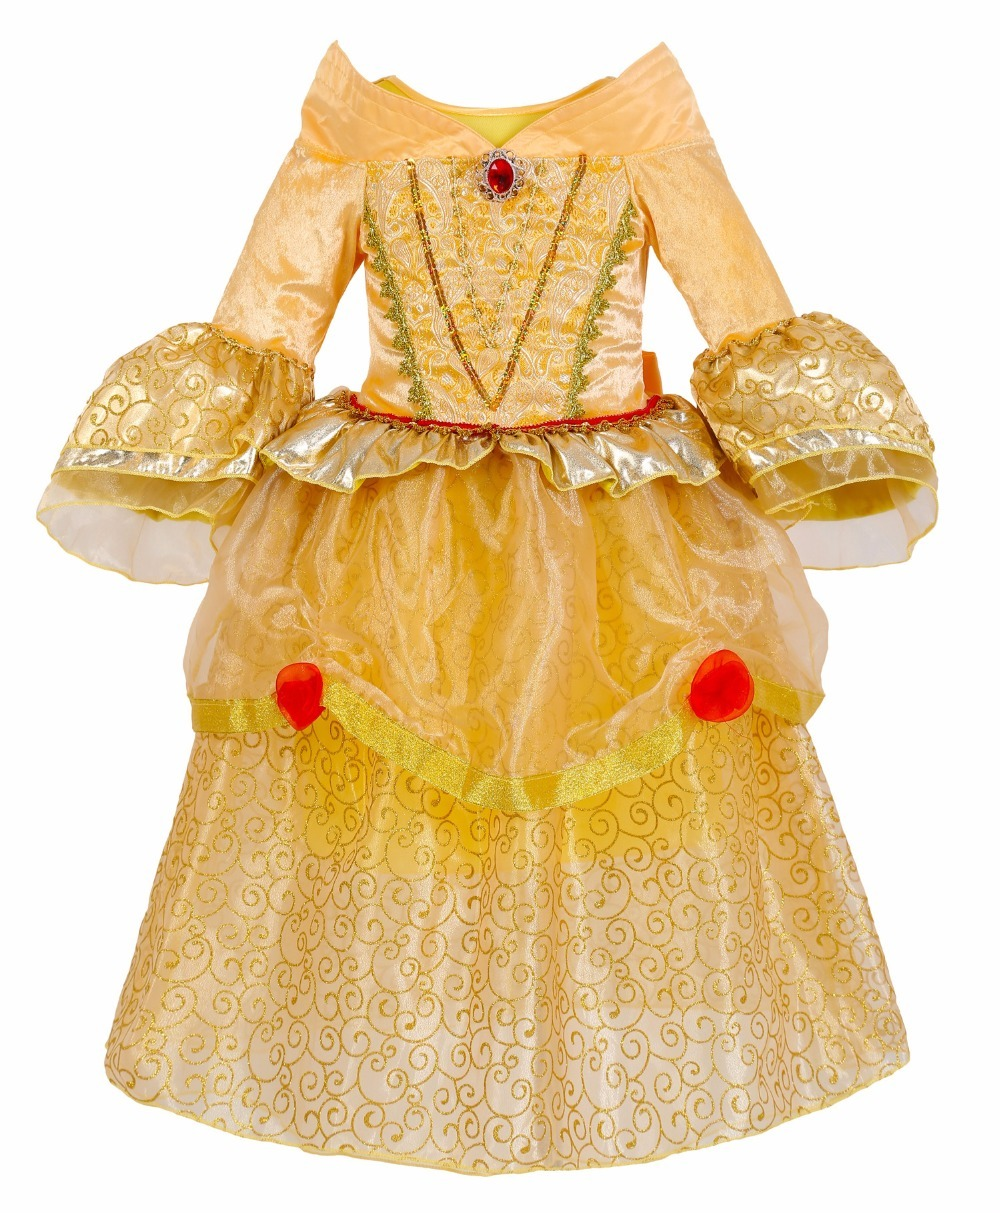 Beauty and beast cosplay dresses for girls belle princess kids girls costume dress christmas  1